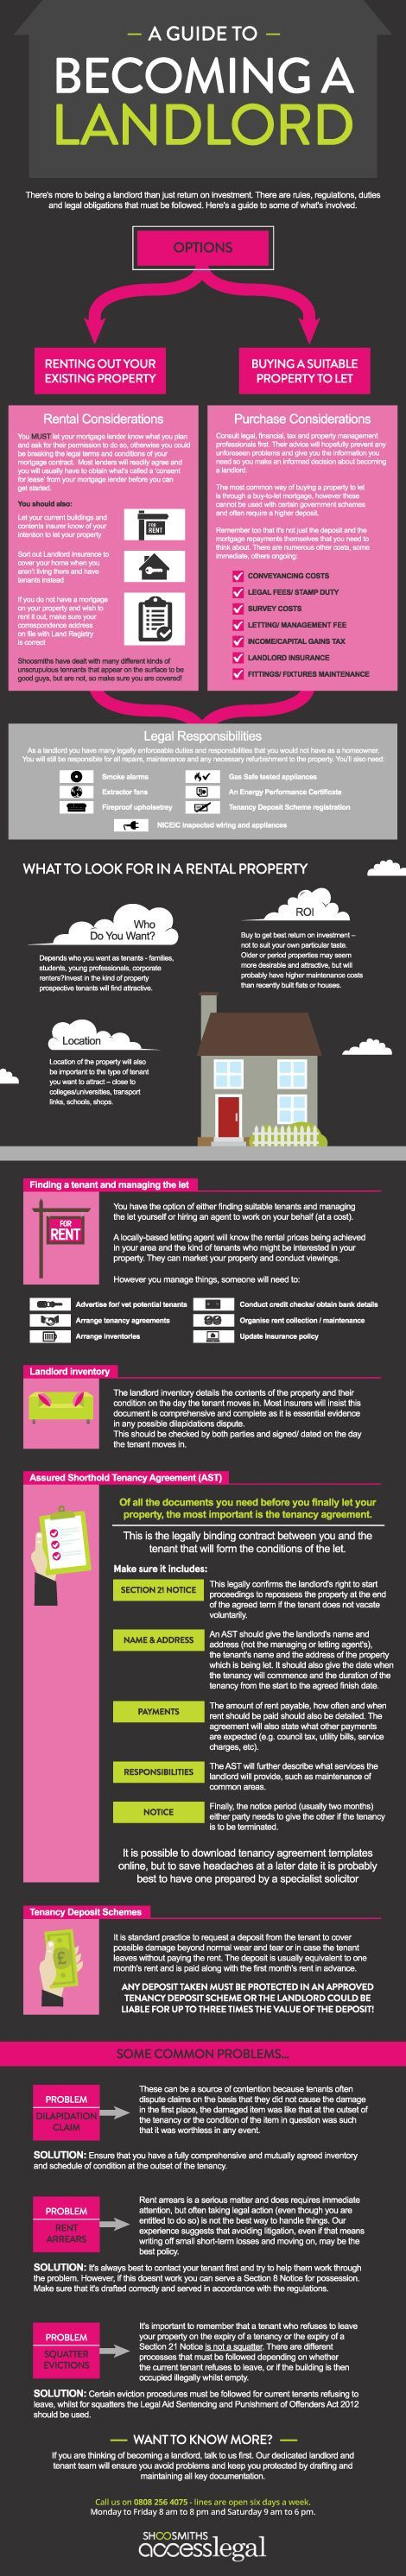 Real estate property... Infographic about how to become a landlord #SaintAugustineHomes